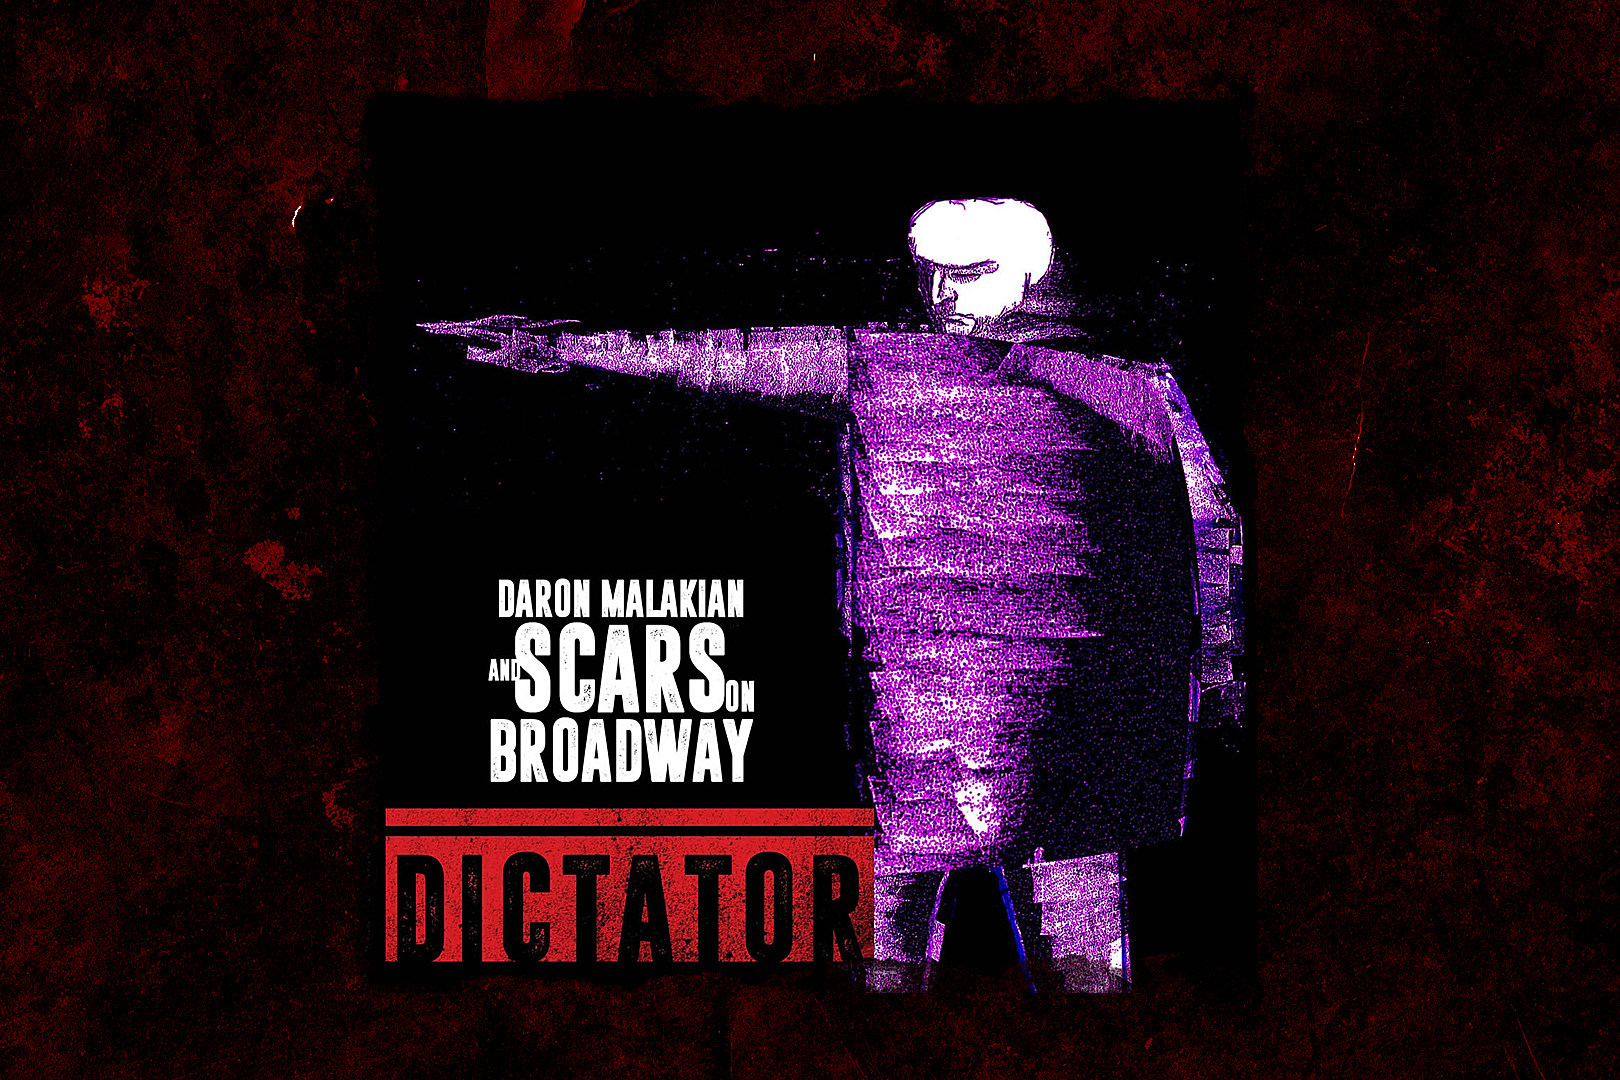 Scars on Broadway's 'Dictator' Has Shades of System Of A Down